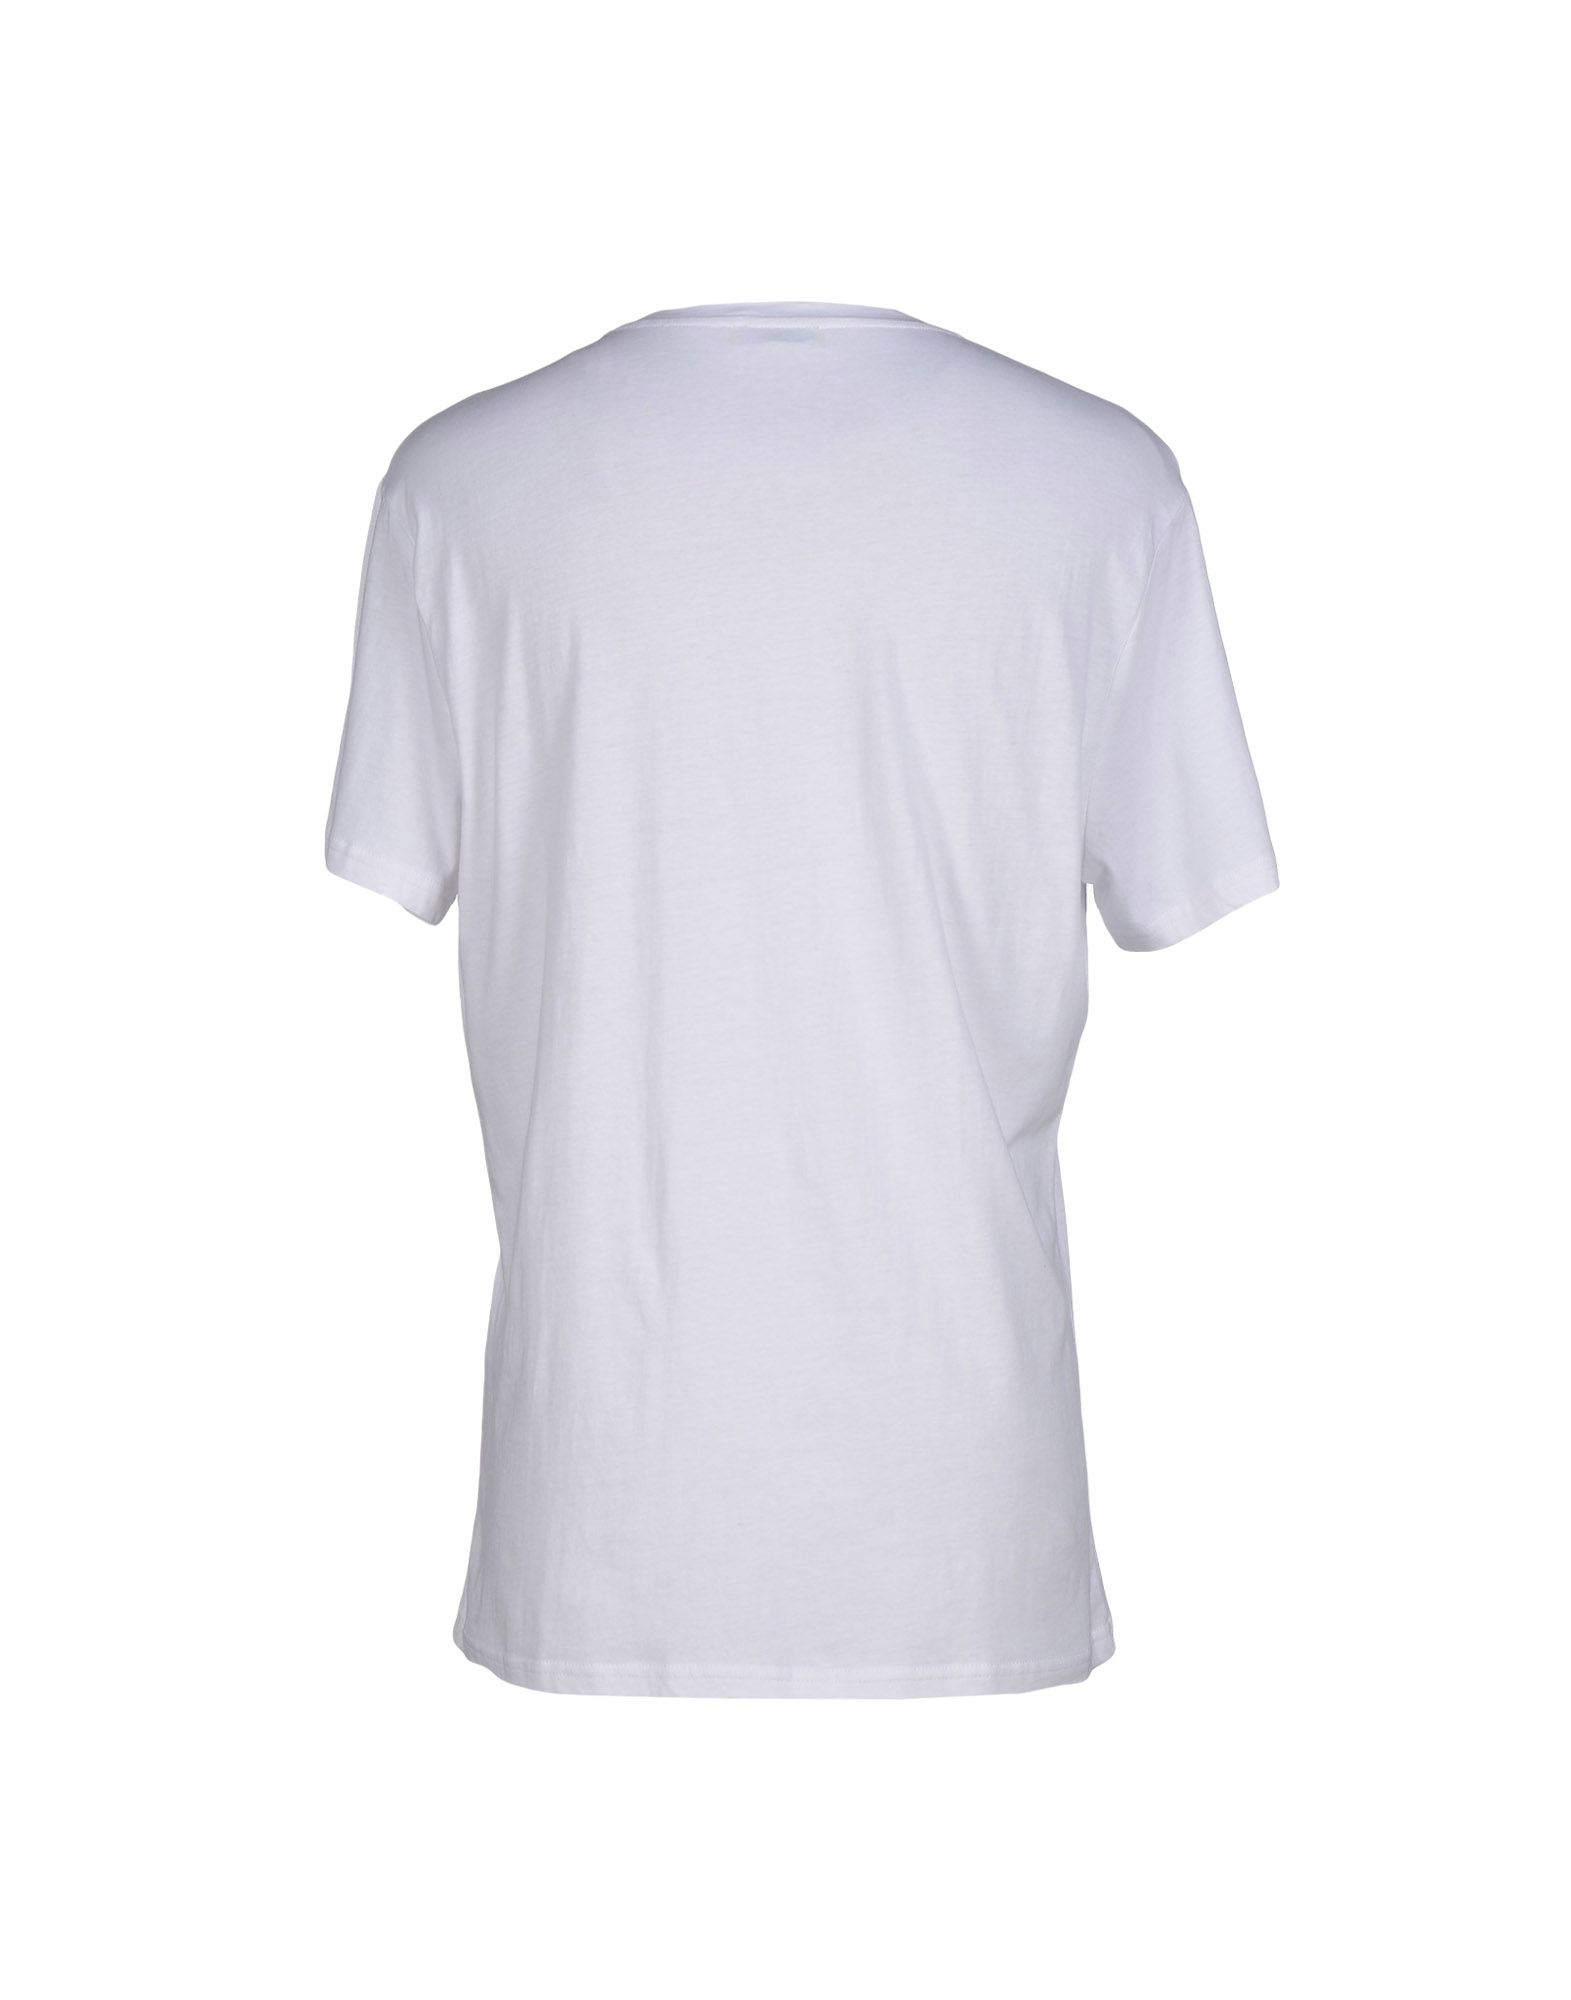 Versace jeans t shirt in white for men save 39 lyst for Blue and white versace shirt